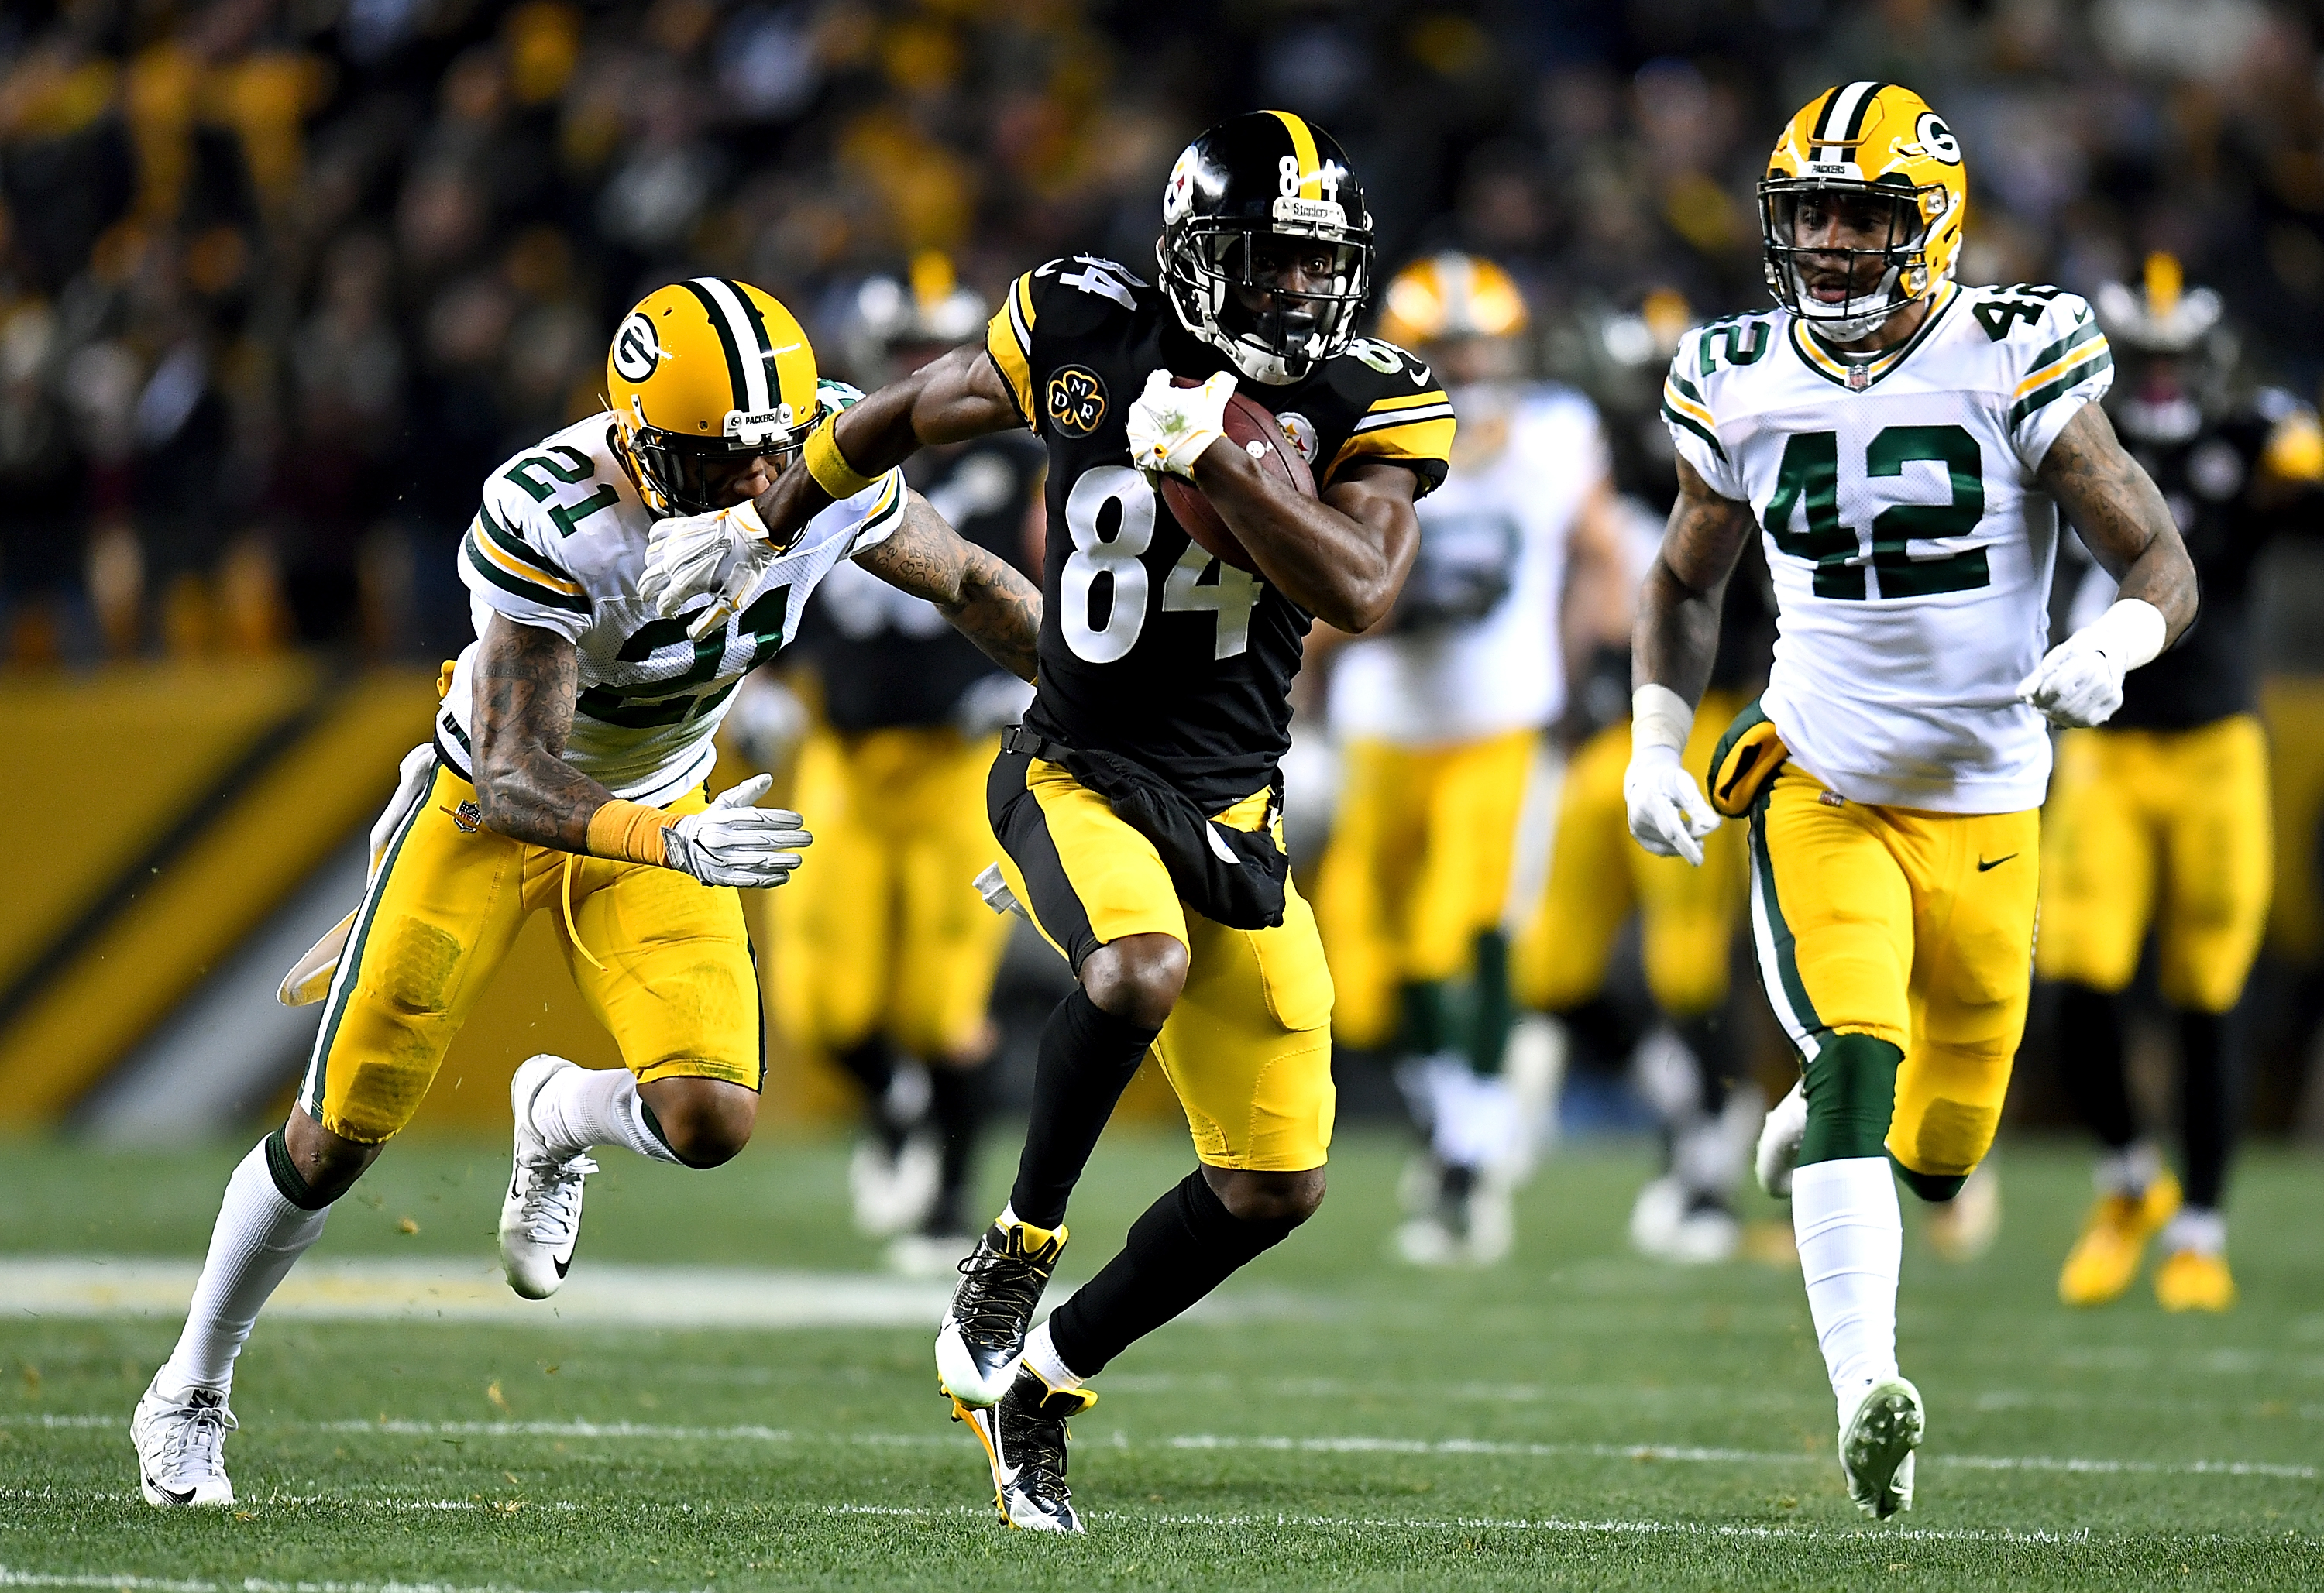 PITTSBURGH, PA - NOVEMBER 26: Antonio Brown #84 of the Pittsburgh Steelers runs up field after a catch in the first half during the game against the Green Bay Packers at Heinz Field on November 26, 2017 in Pittsburgh, Pennsylvania. (Photo by Joe Sargent/Getty Images)